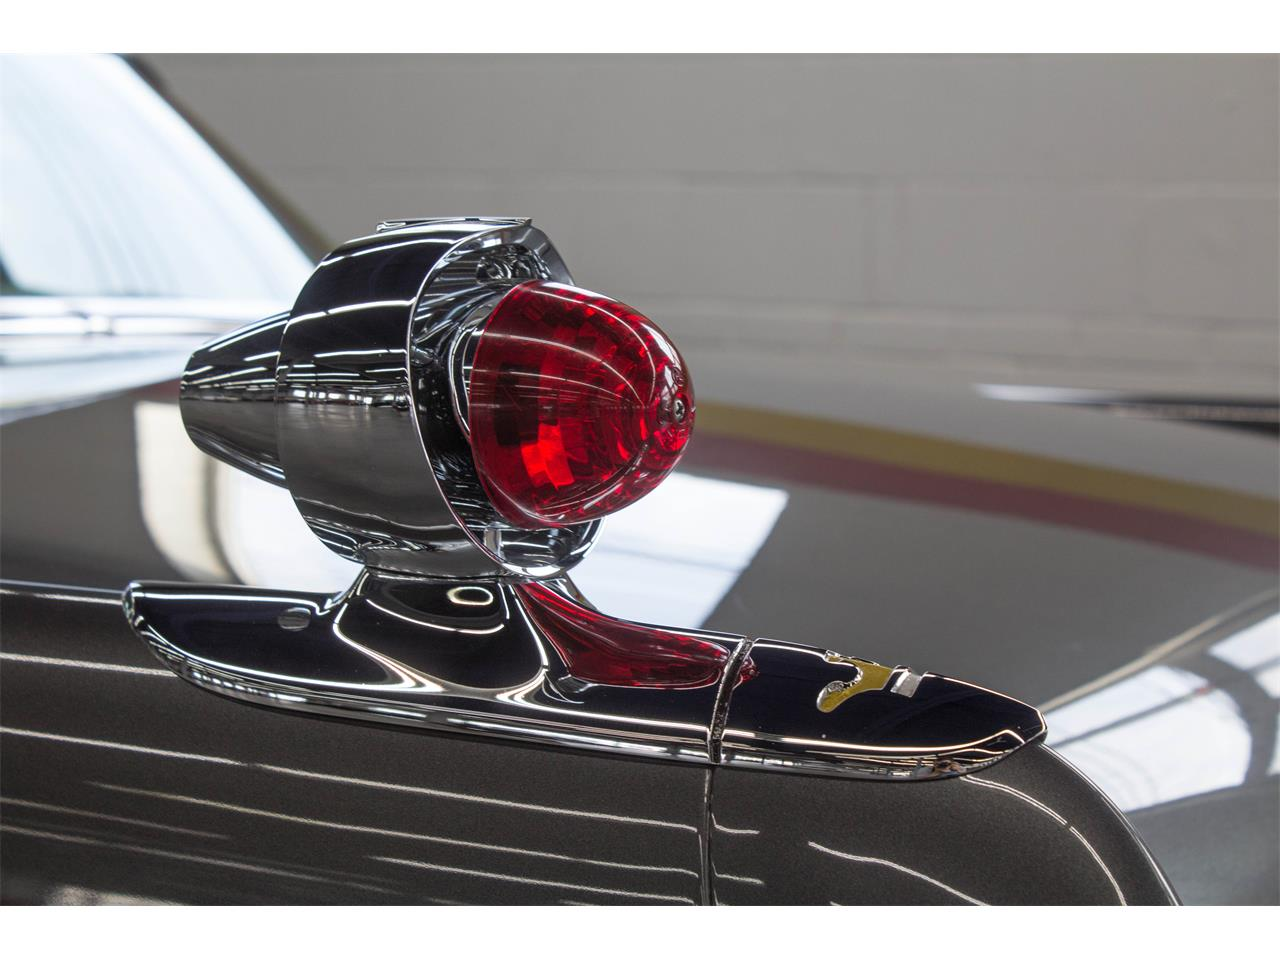 For Sale: 1956 Chrysler Imperial in Montreal, Quebec